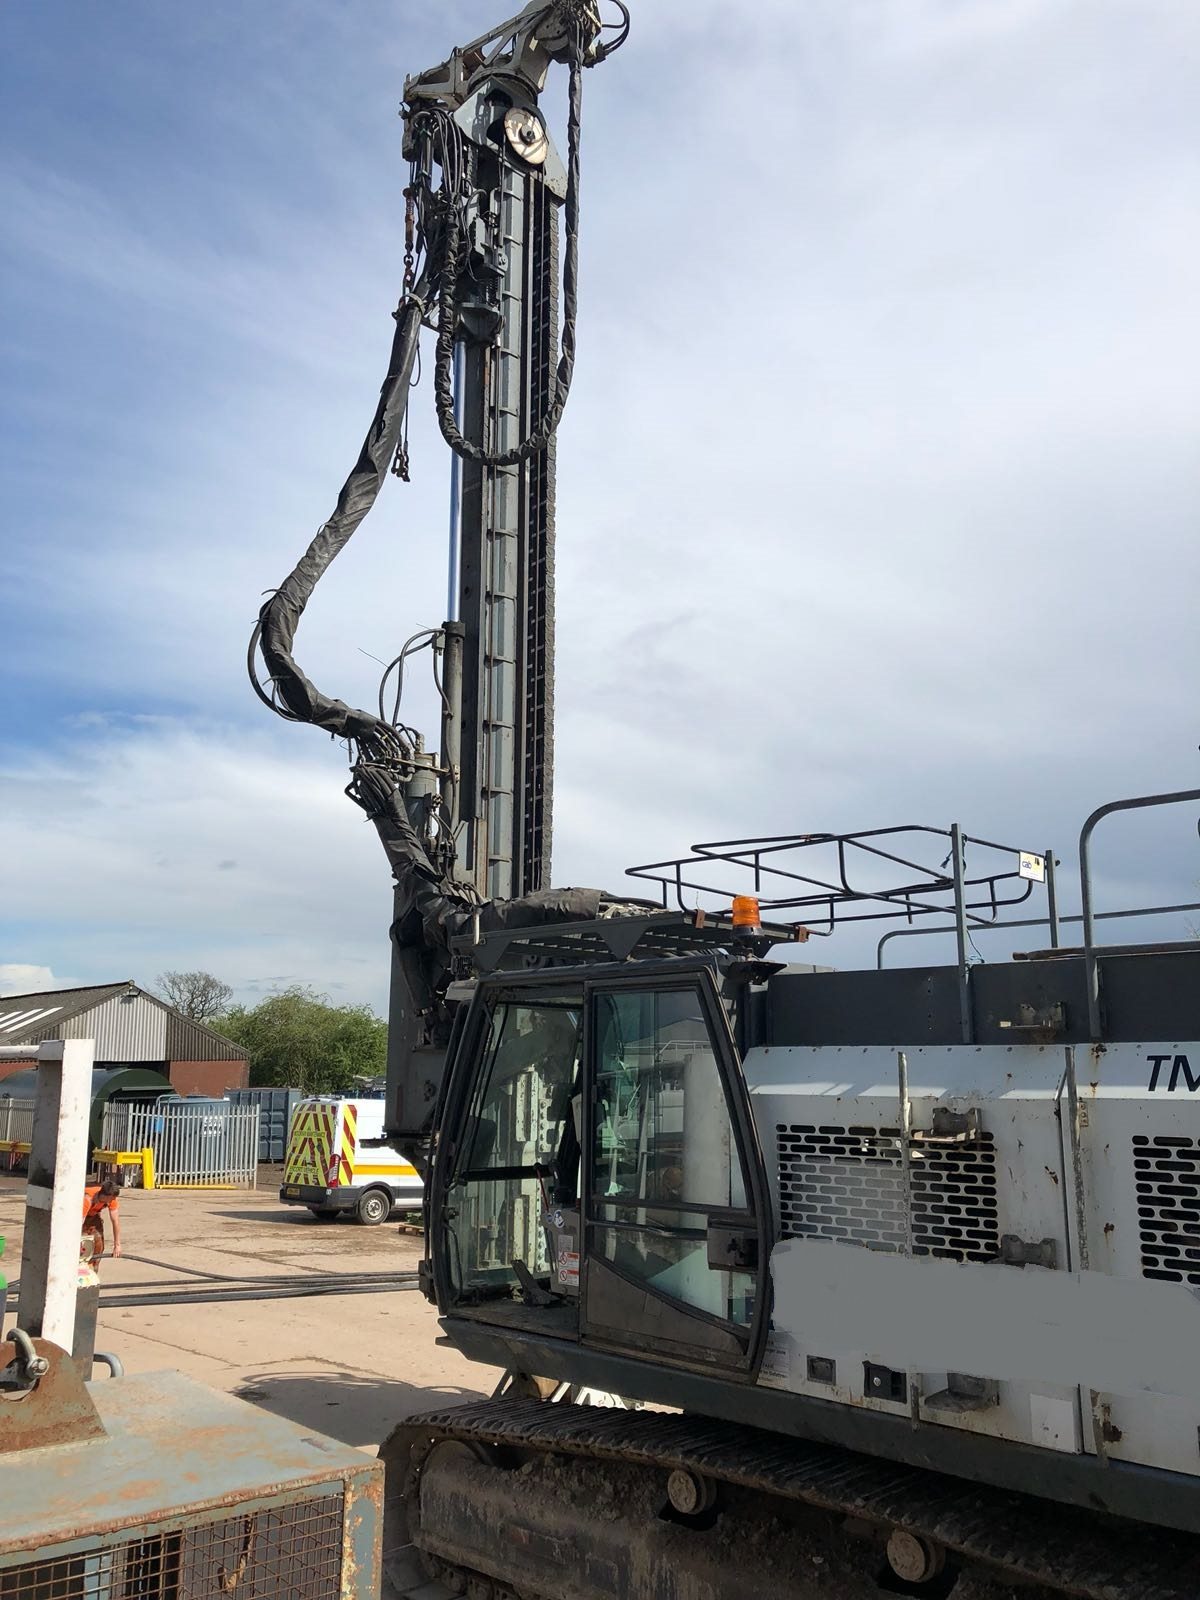 Used ABI TM 13 / 16 telescopic leader rig for sale